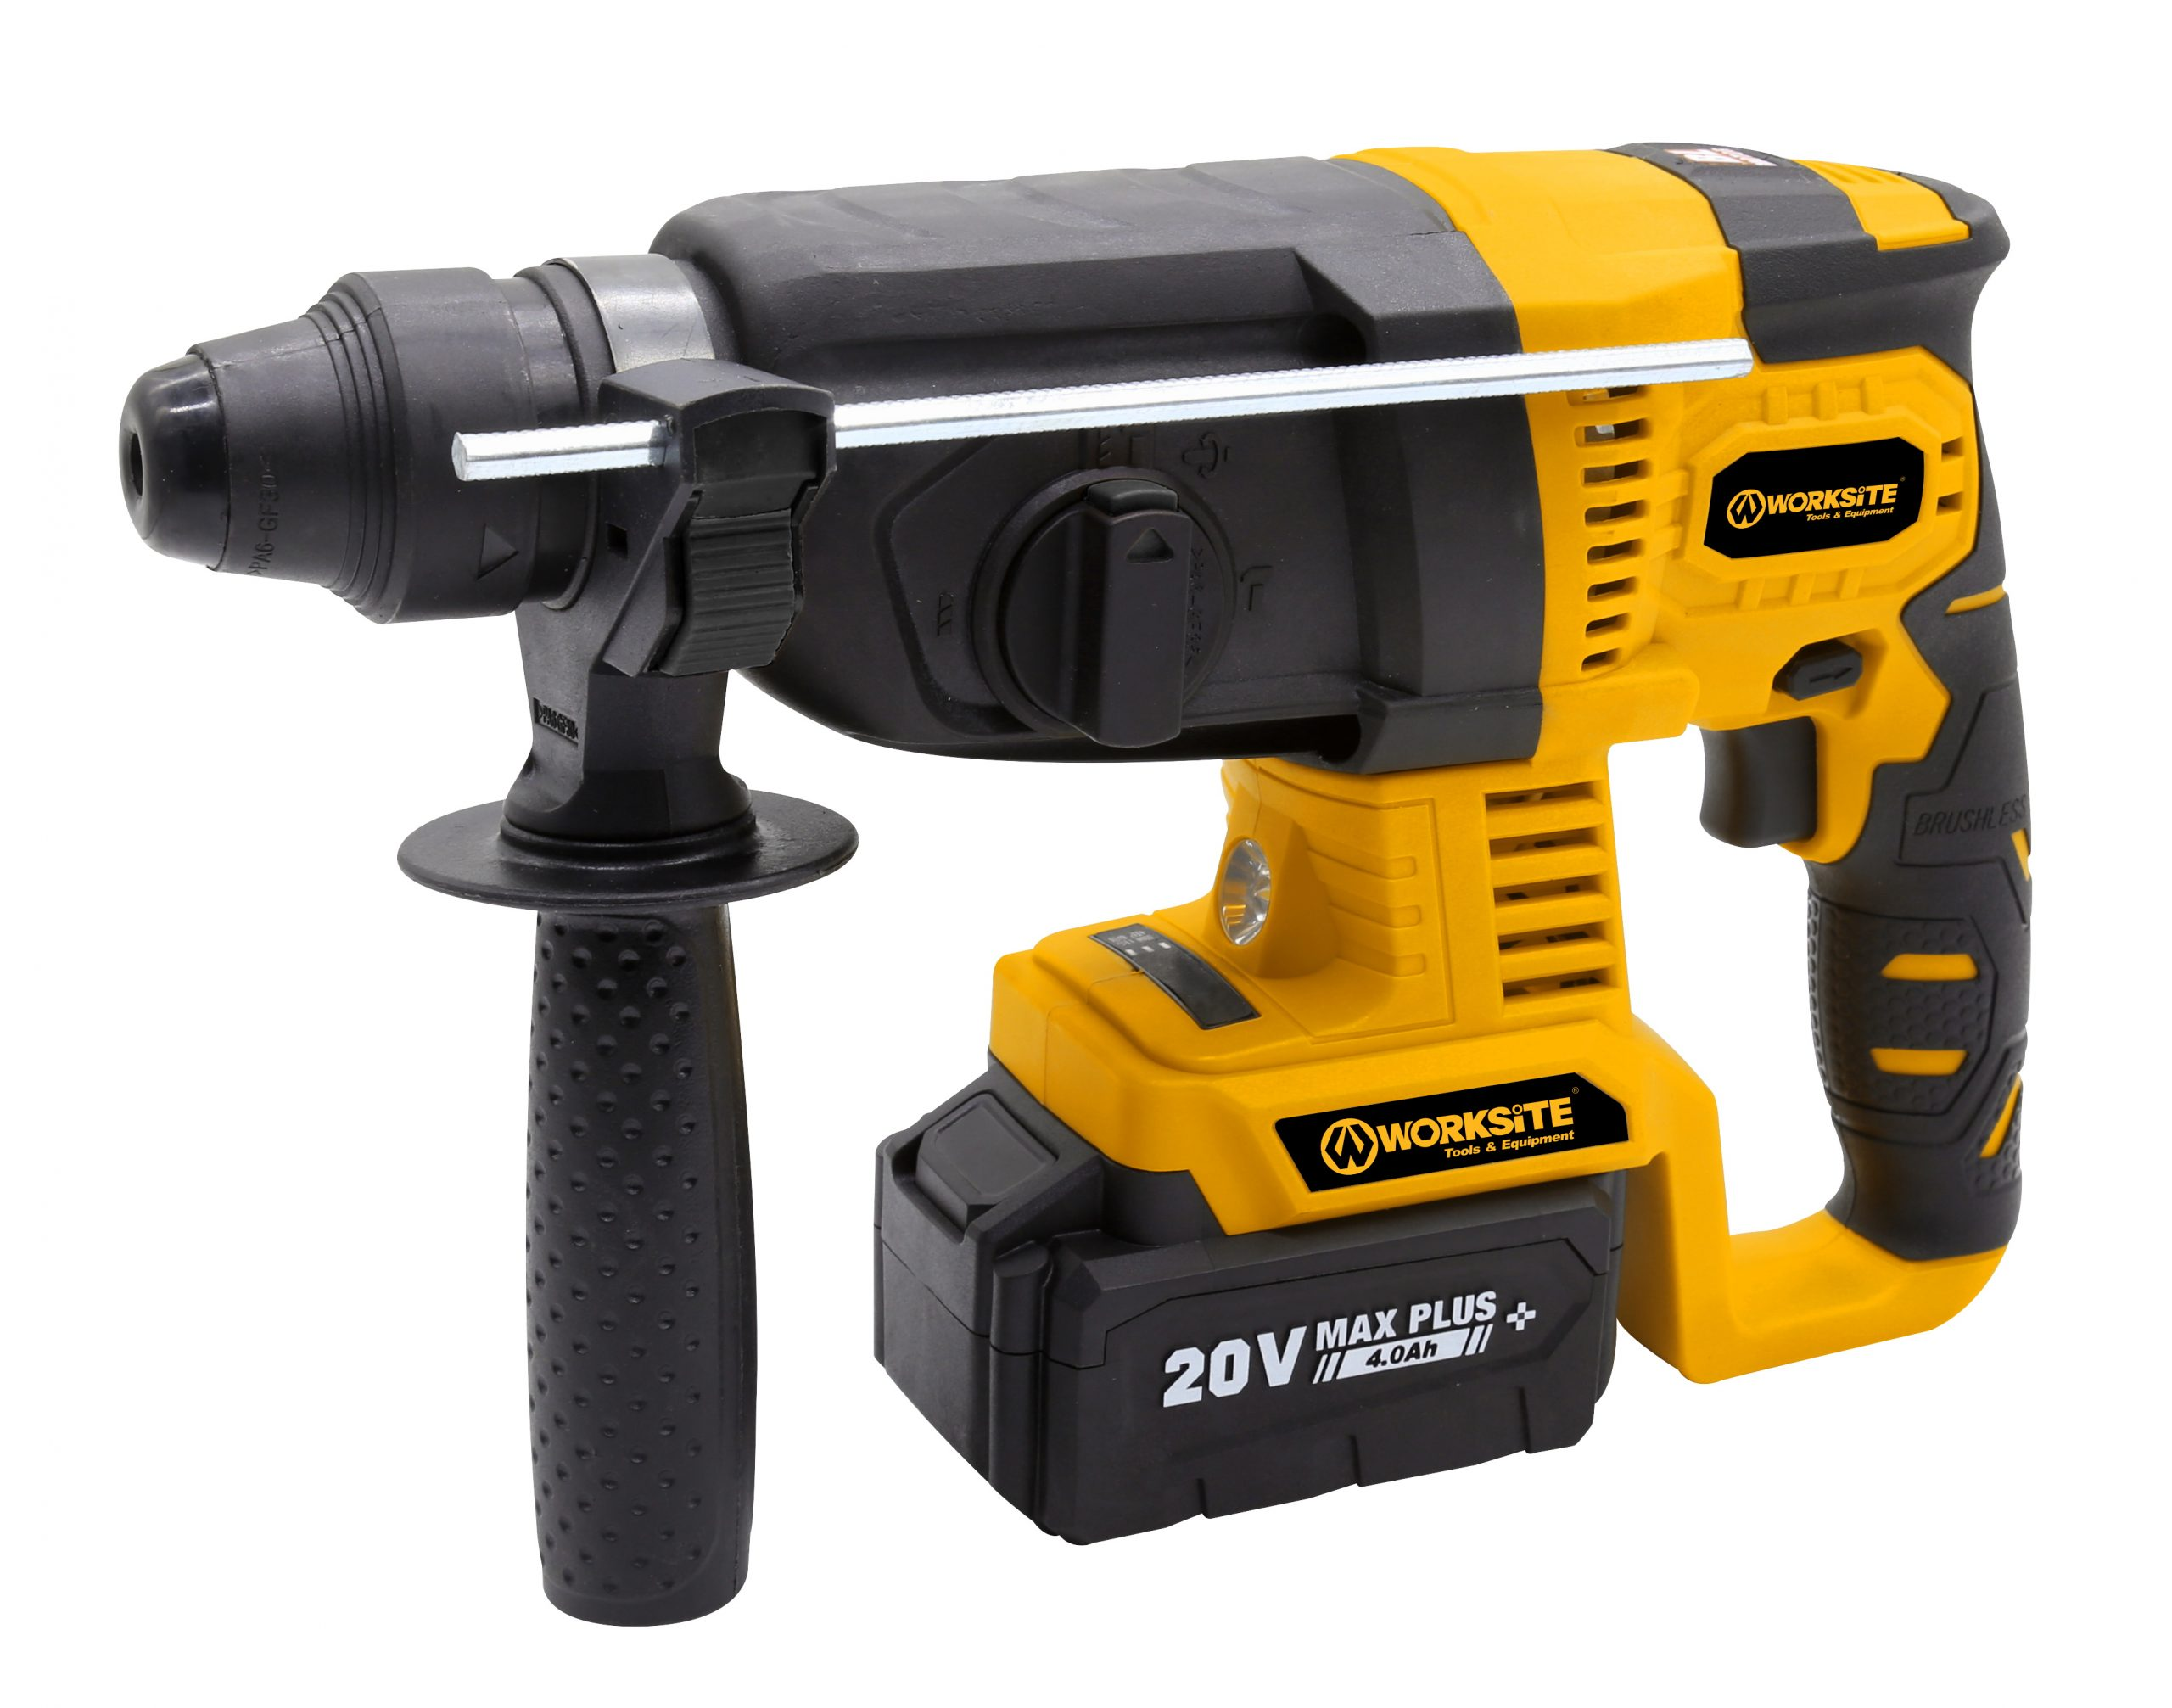 Worksite Brushless Cordless Rotary Hammer Drill, SDS Plus, 20V Max, 4.0AH Battery and FAST Charger, Chuck Size 1/2″INCH CRH326